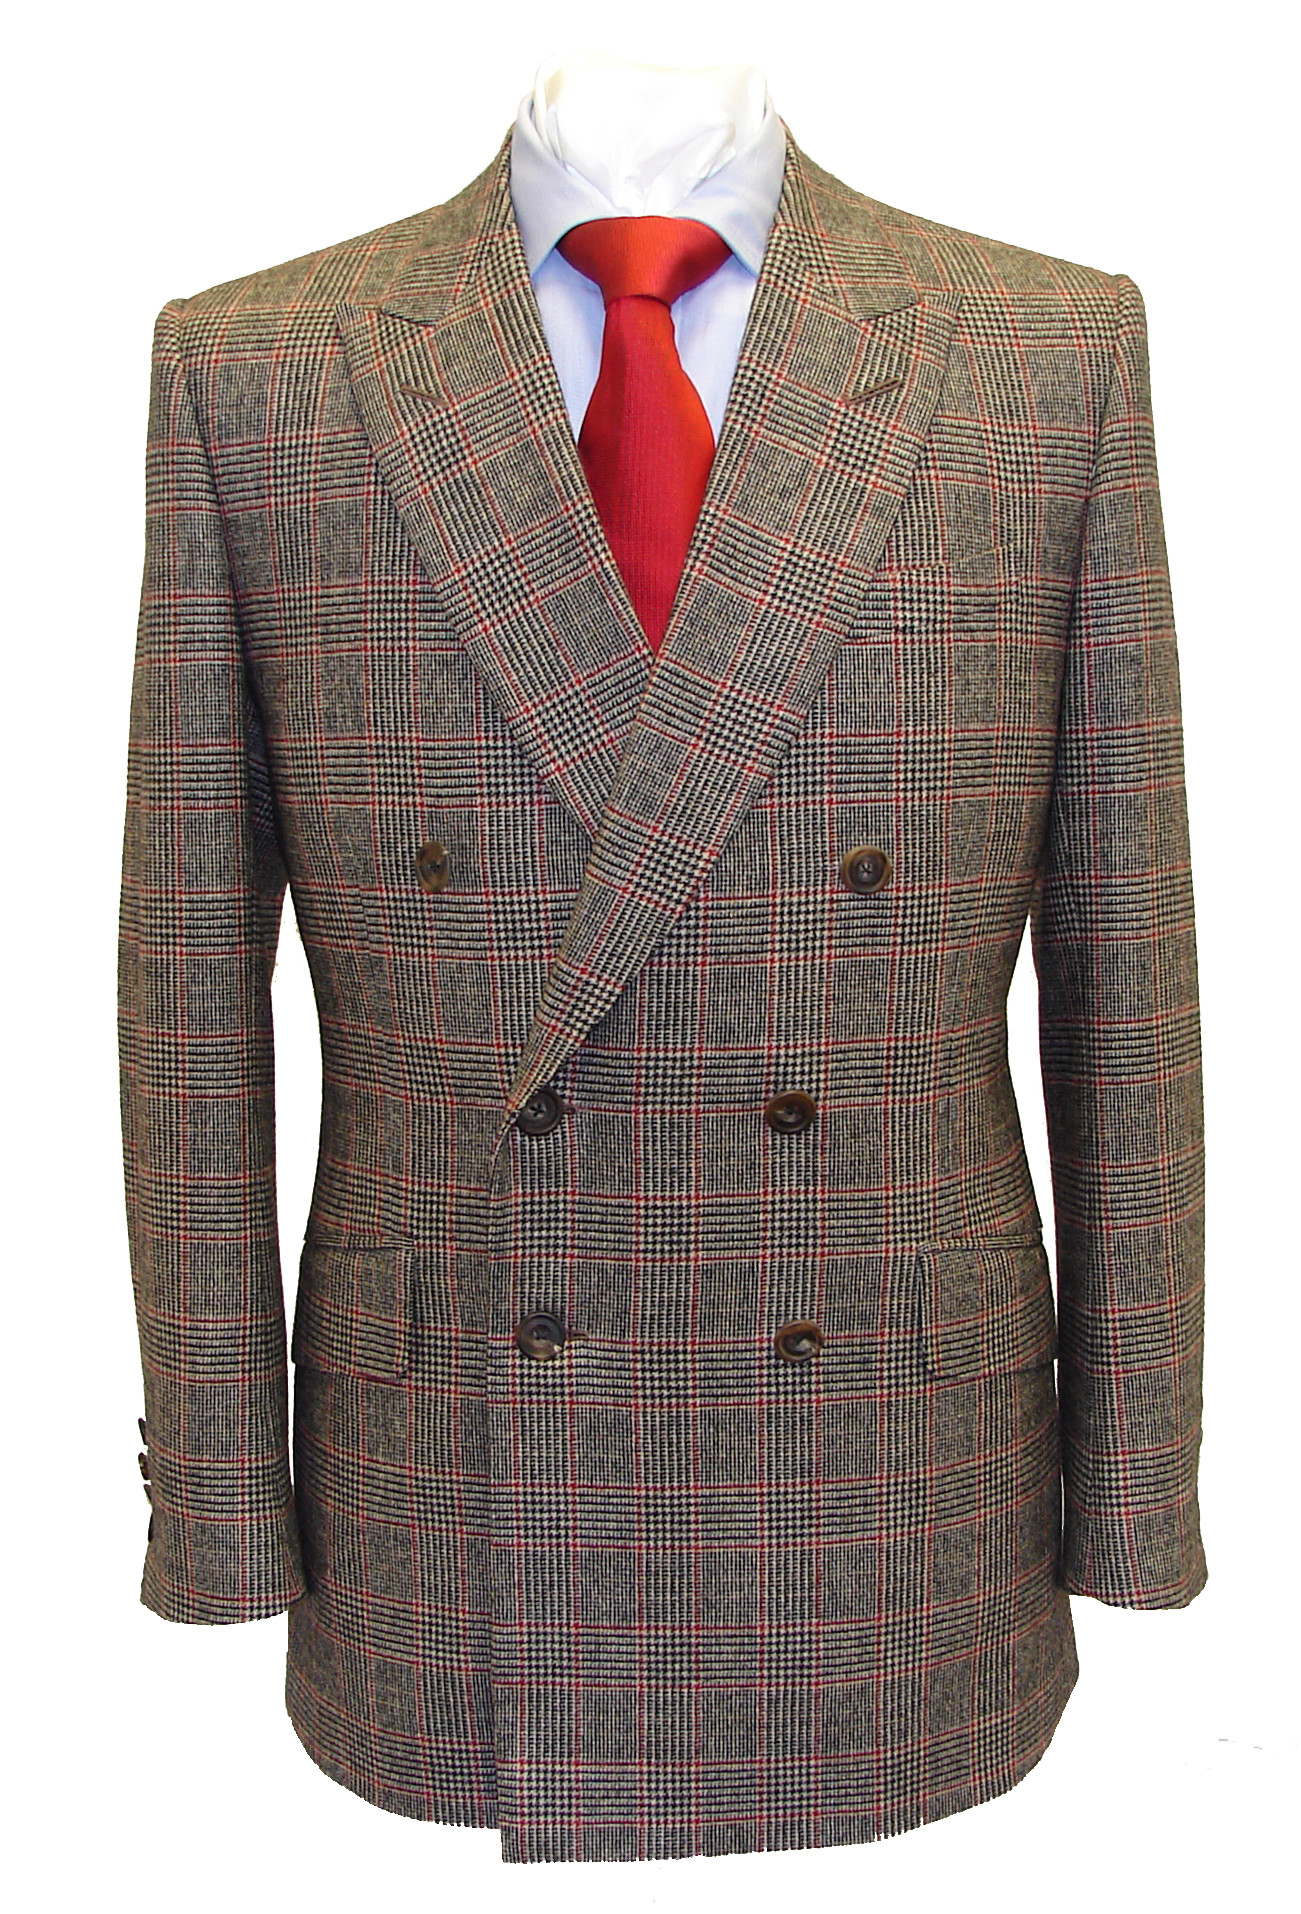 Henry Herbert Tailors Prince of Wales check